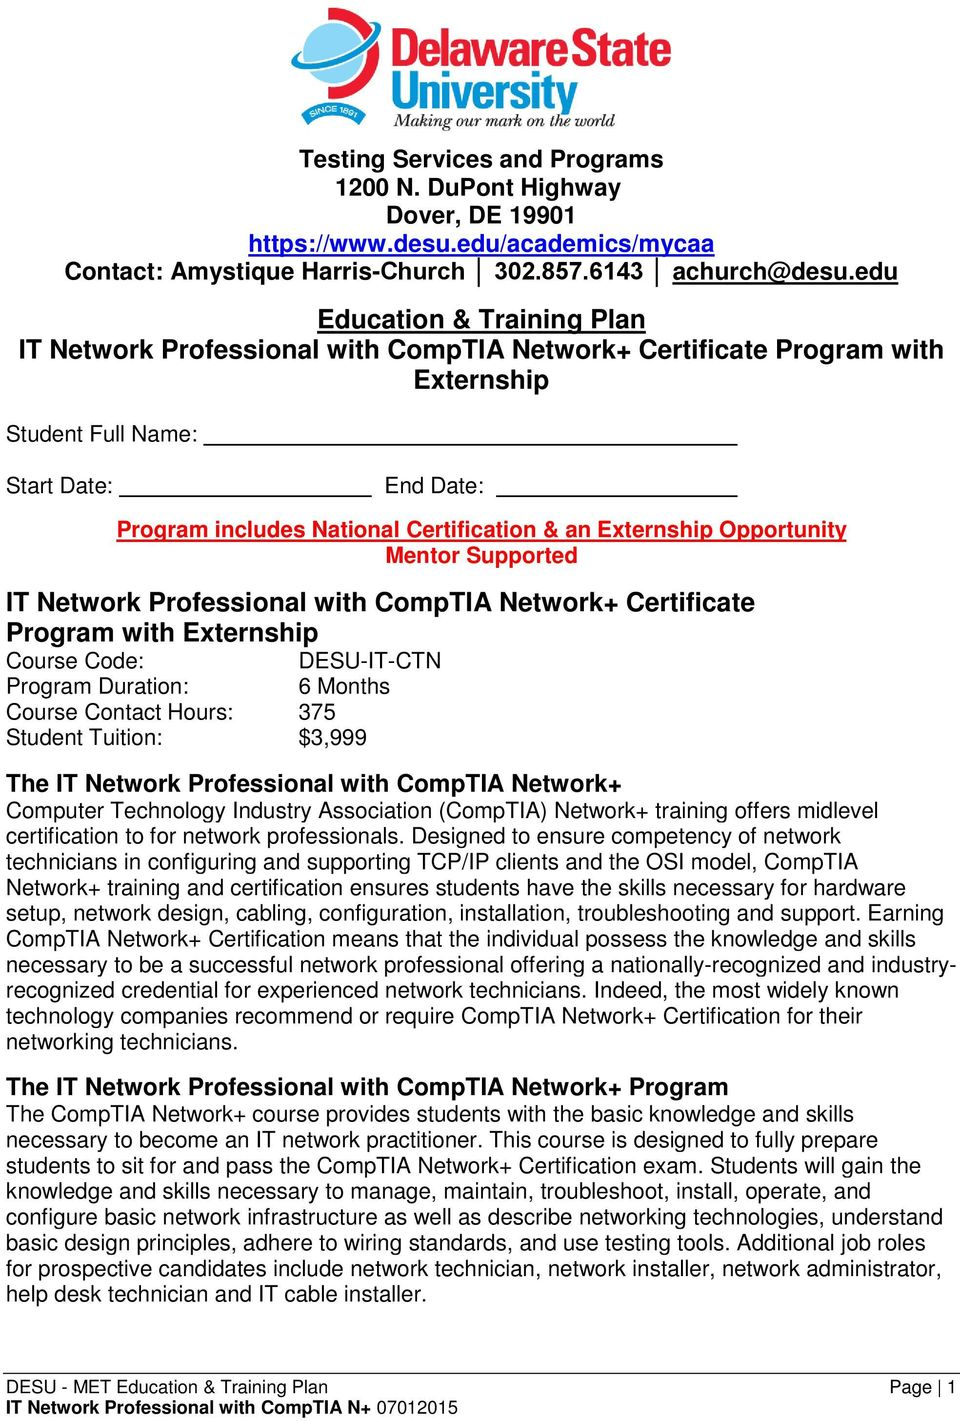 Externship Opportunity Mentor Supported IT Network Professional with CompTIA Network+ Certificate Program with Externship Course Code: DESU-IT-CTN Program Duration: 6 Months Course Contact Hours: 375